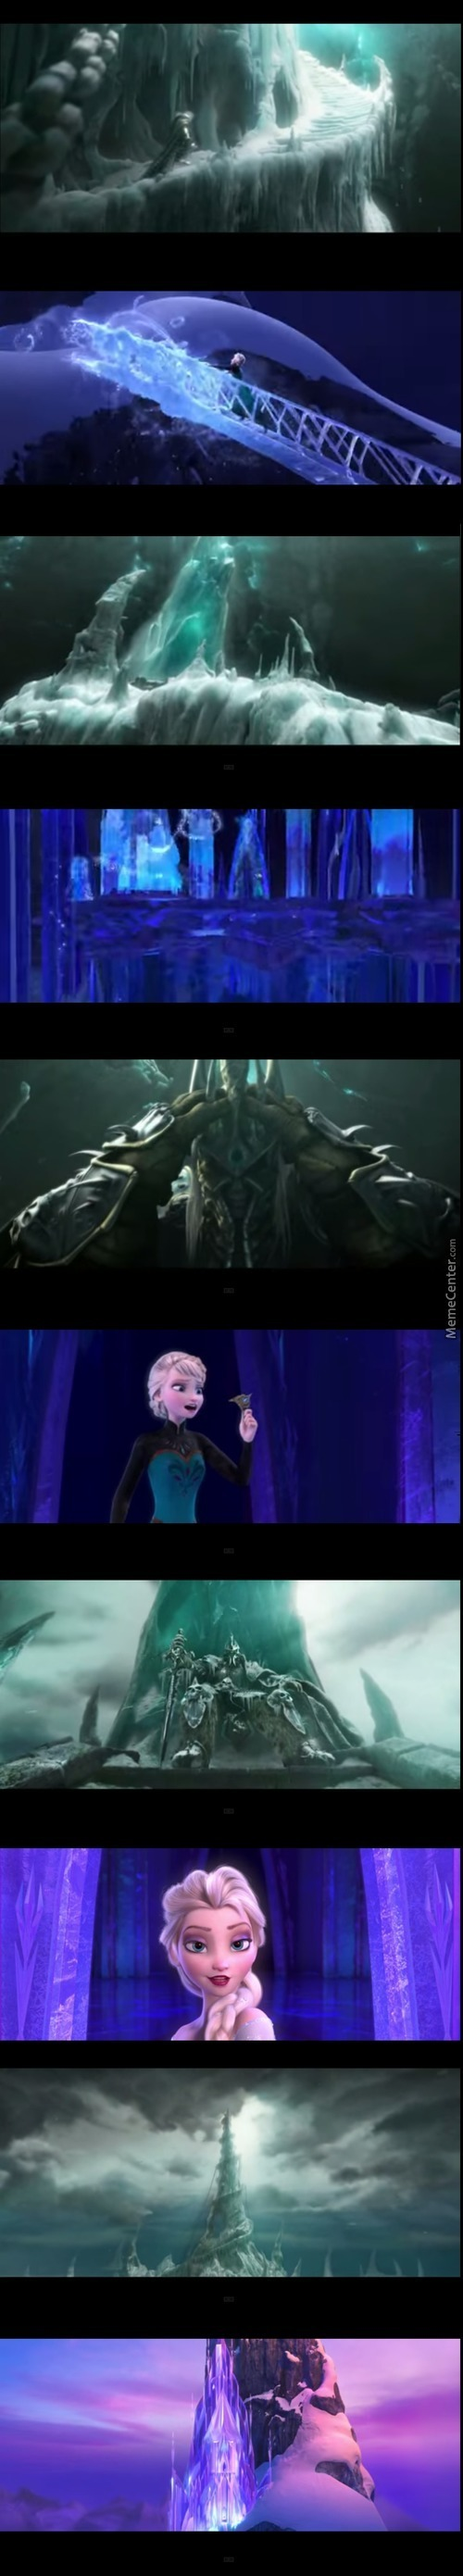 The Frozen Disney